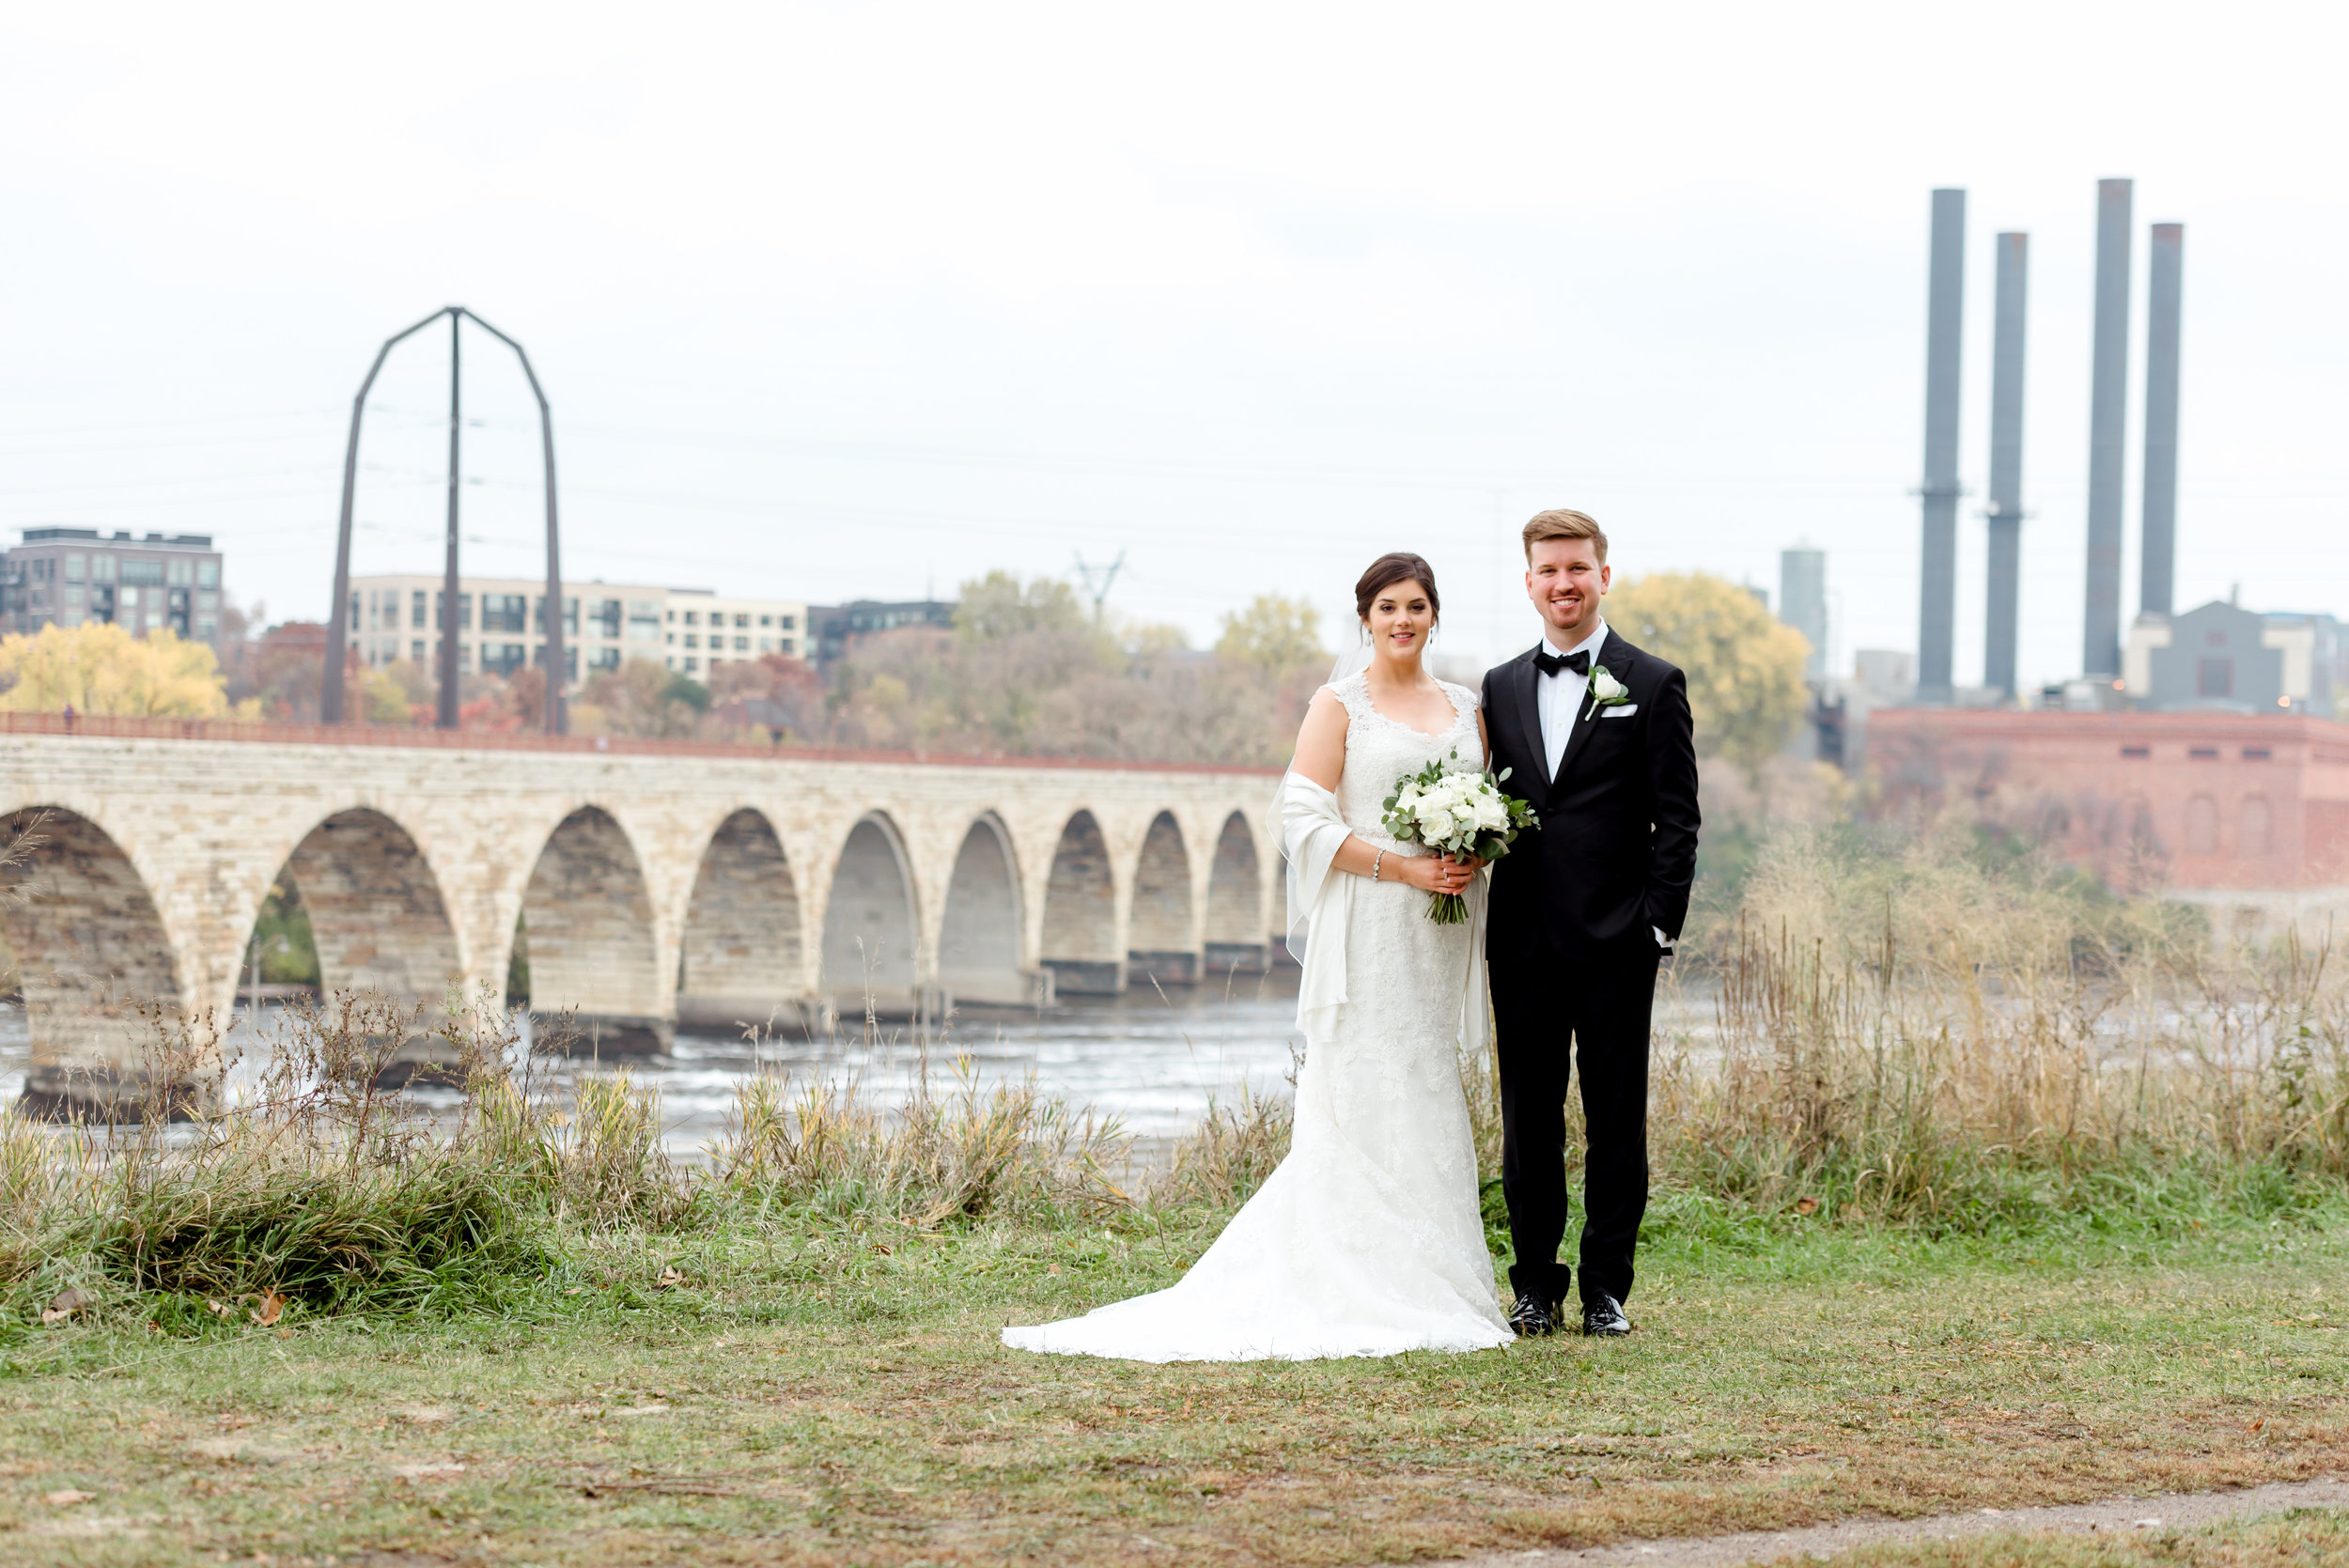 Mill Ruins Park Wedding Photos - Best Places to Take Wedding Photos in Minneapolis - Mpls Wedding Photographer